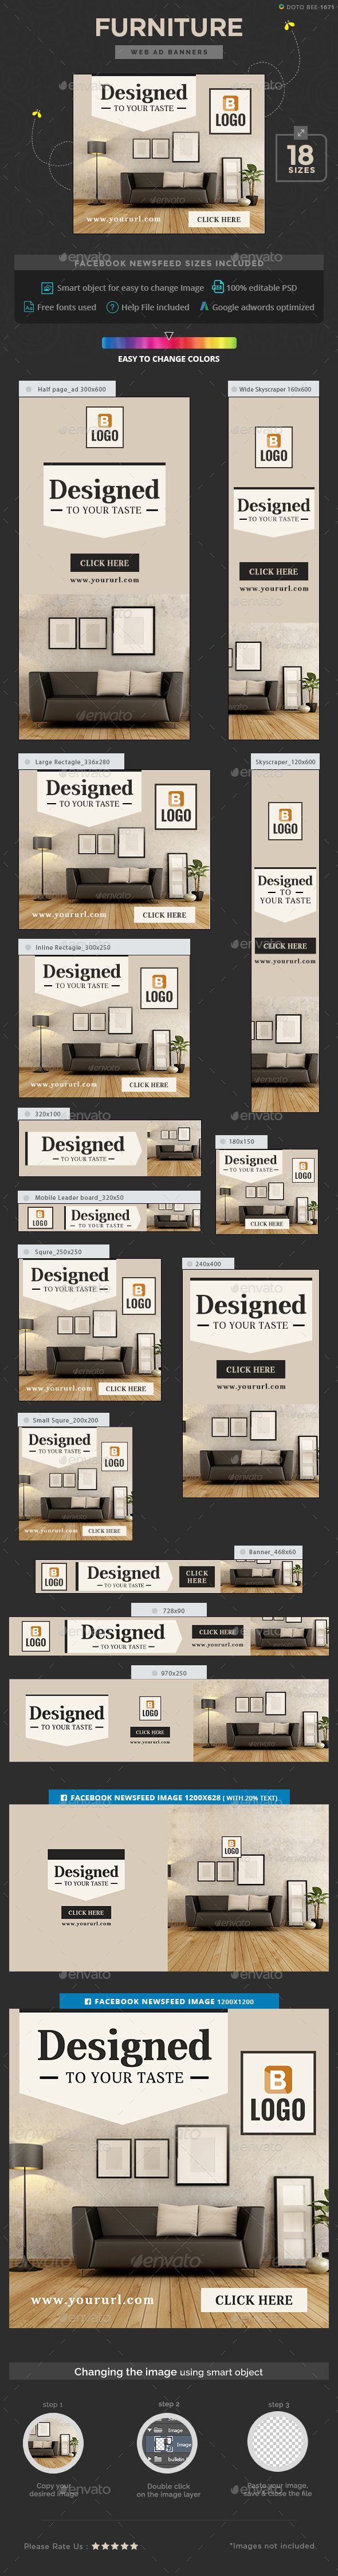 Furniture Banners - Banners & Ads Web Elements Download here : https://graphicriver.net/item/furniture-banners/17812821?s_rank=203&ref=Al-fatih